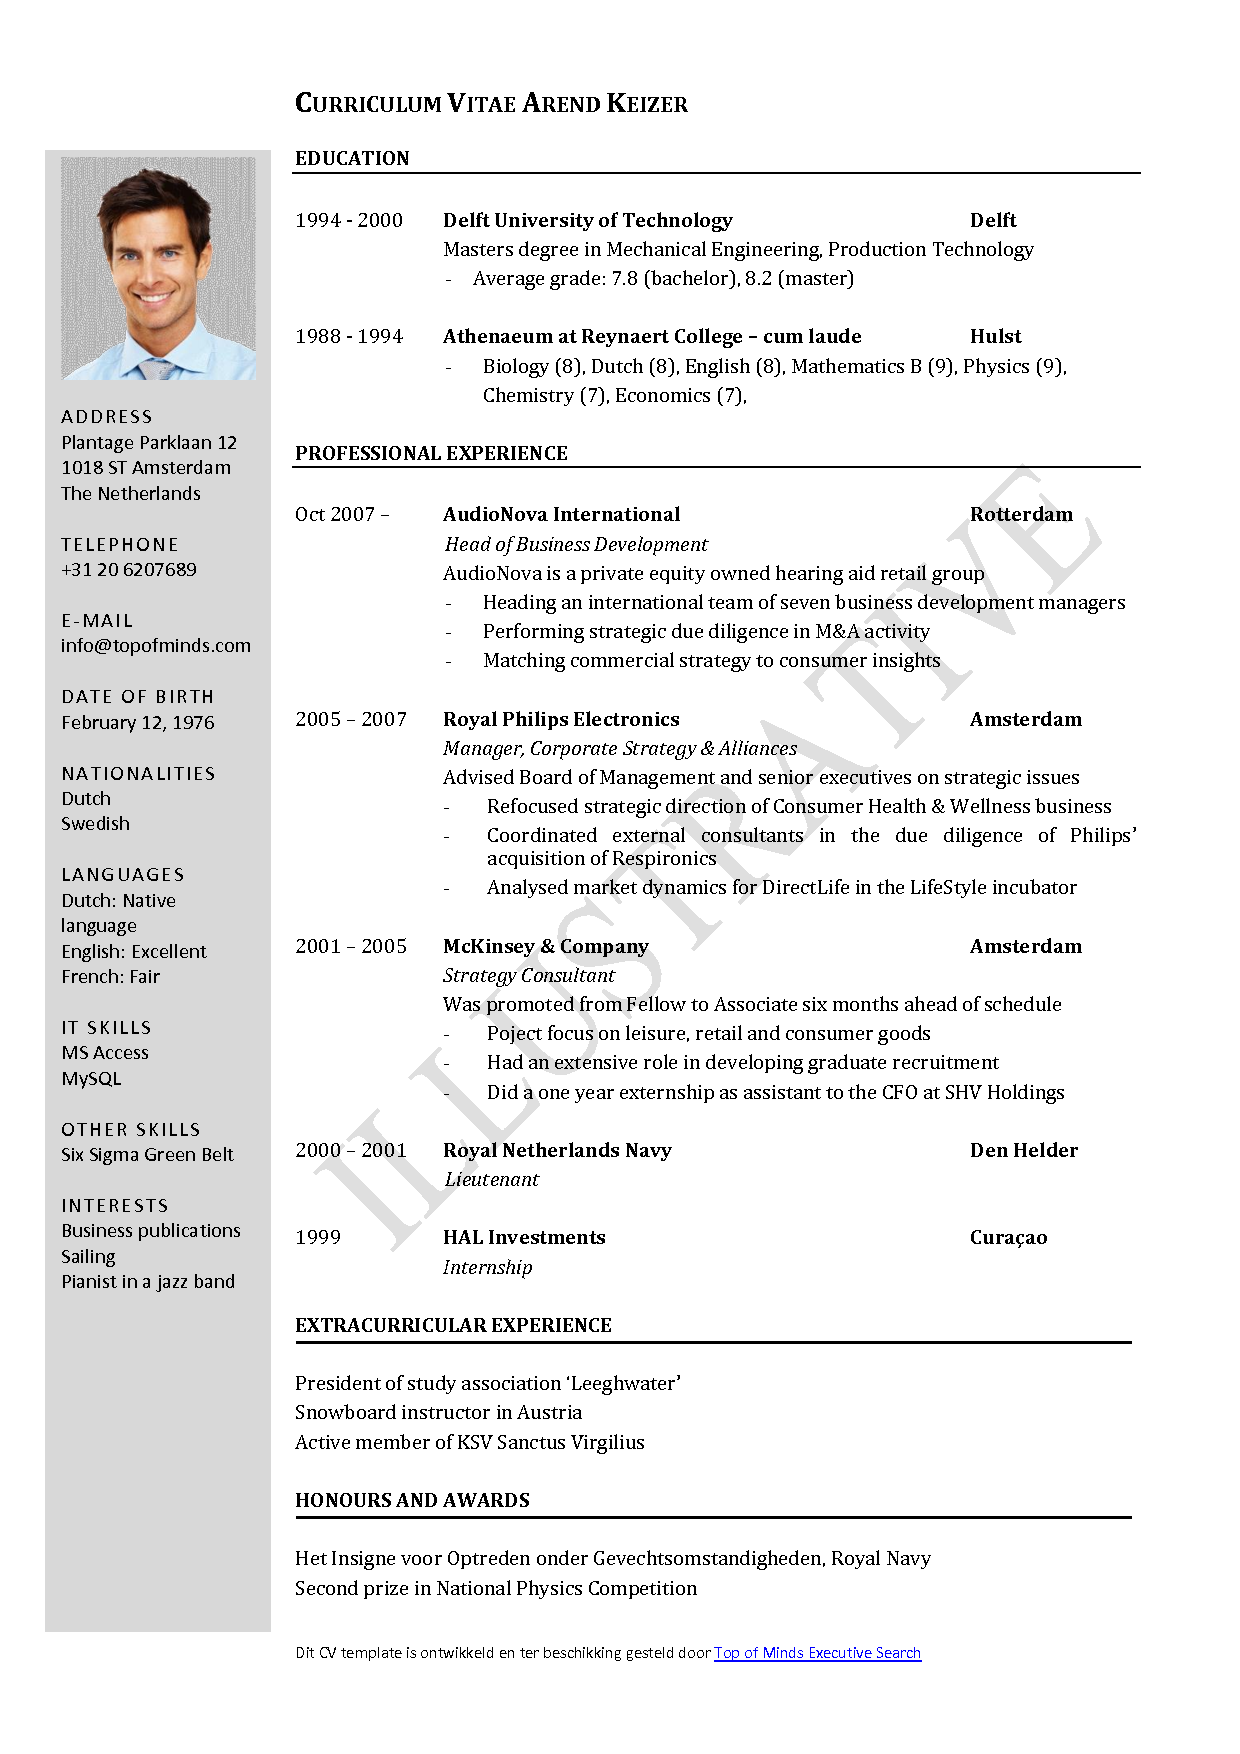 free curriculum vitae template word download cv template - Curriculum Vitae Format Doc File Indonesia